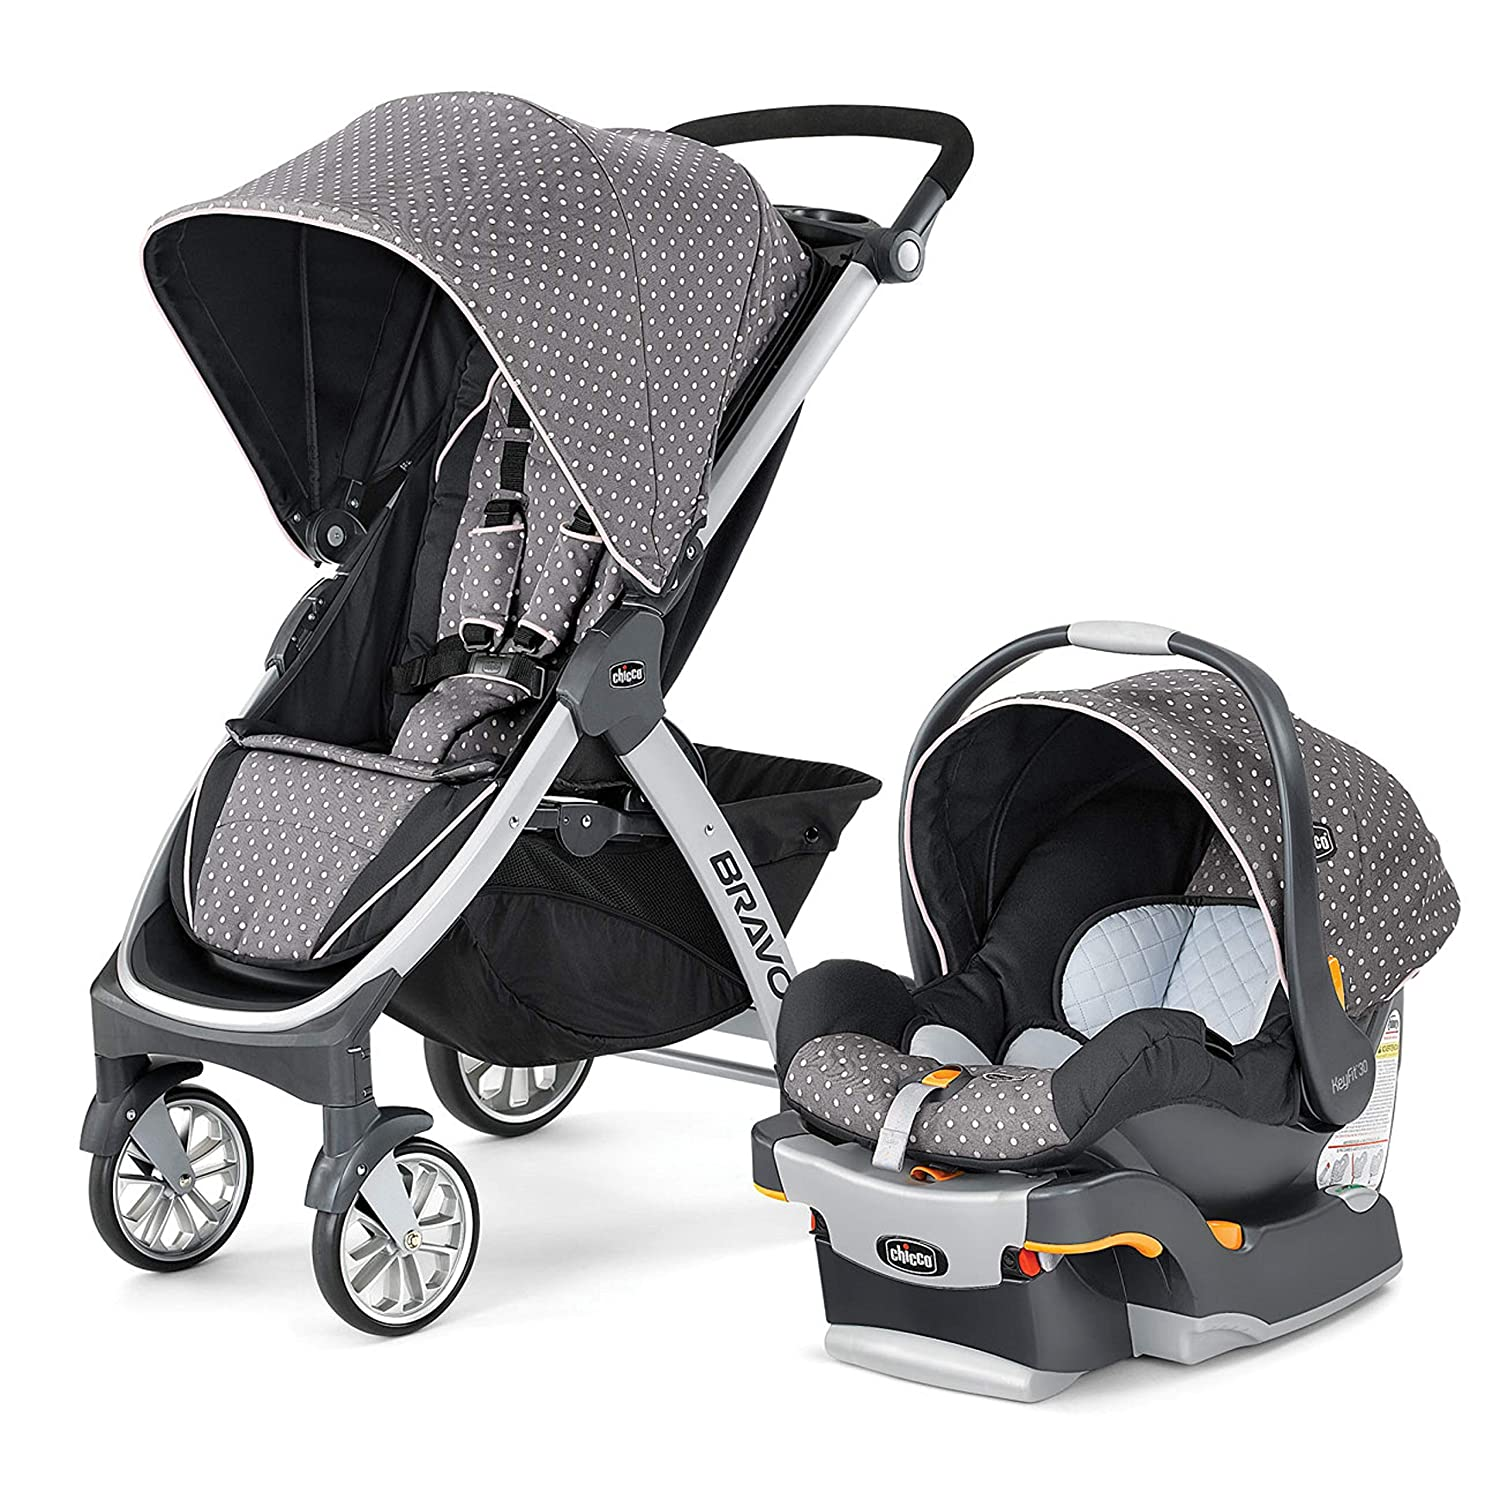 Chicco Bravo Trio Baby Stroller and Car Seat Travel System